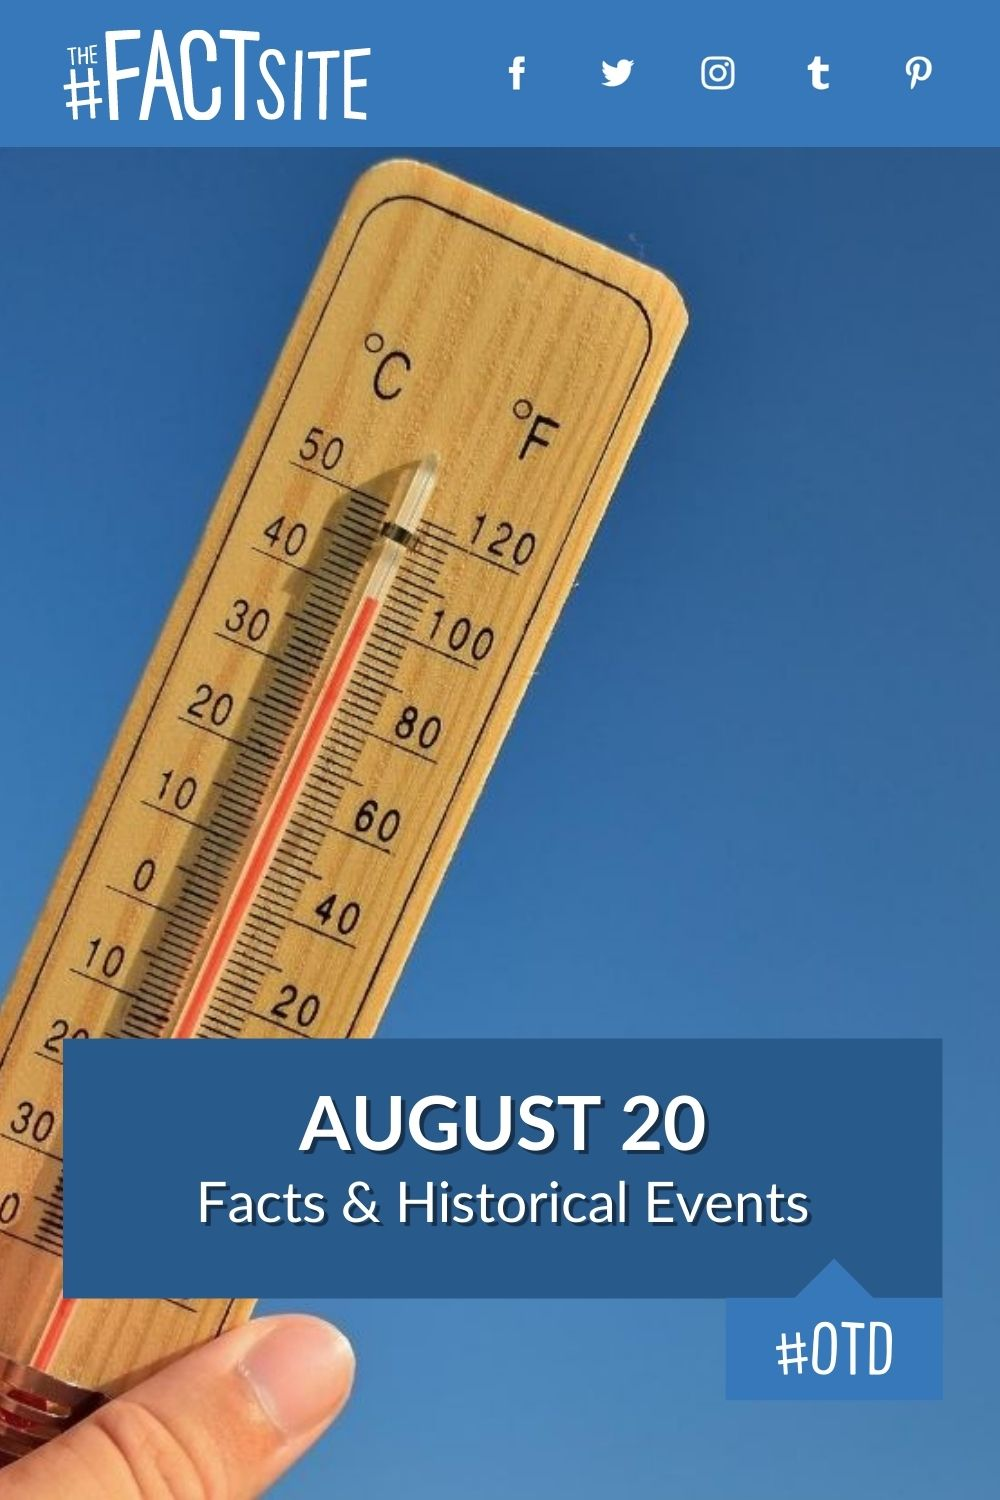 Facts & Historic Events That Happened on August 20